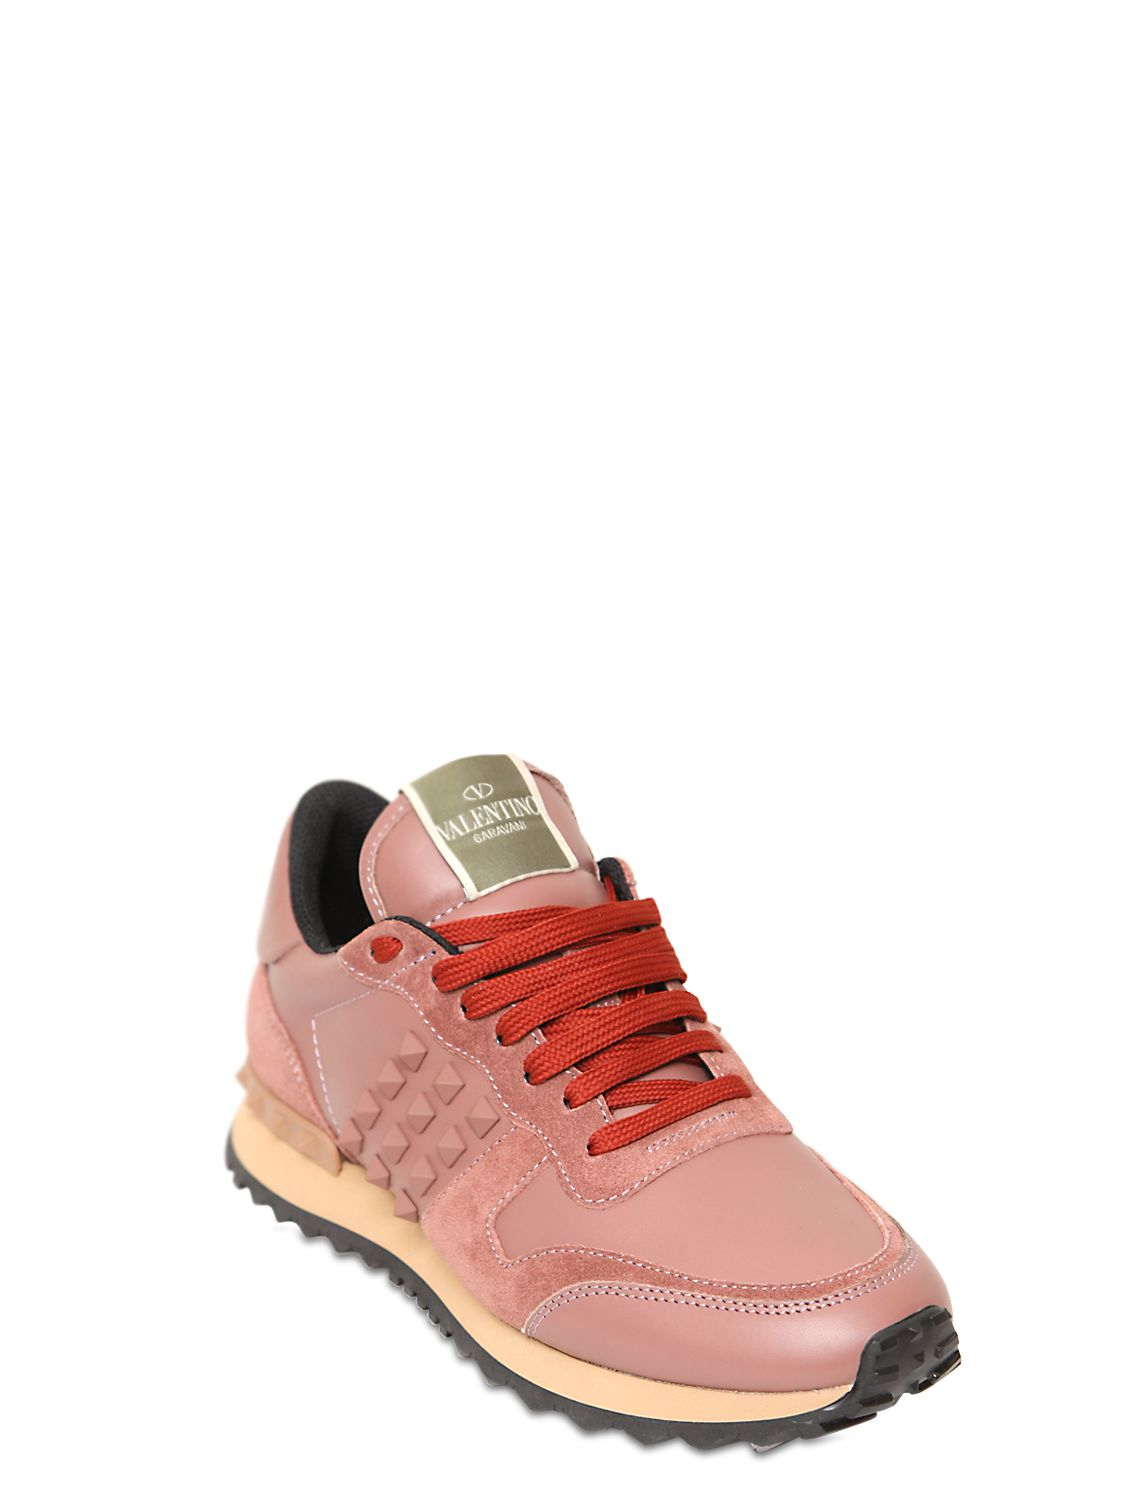 Red Valentino Shoes Nordstrom